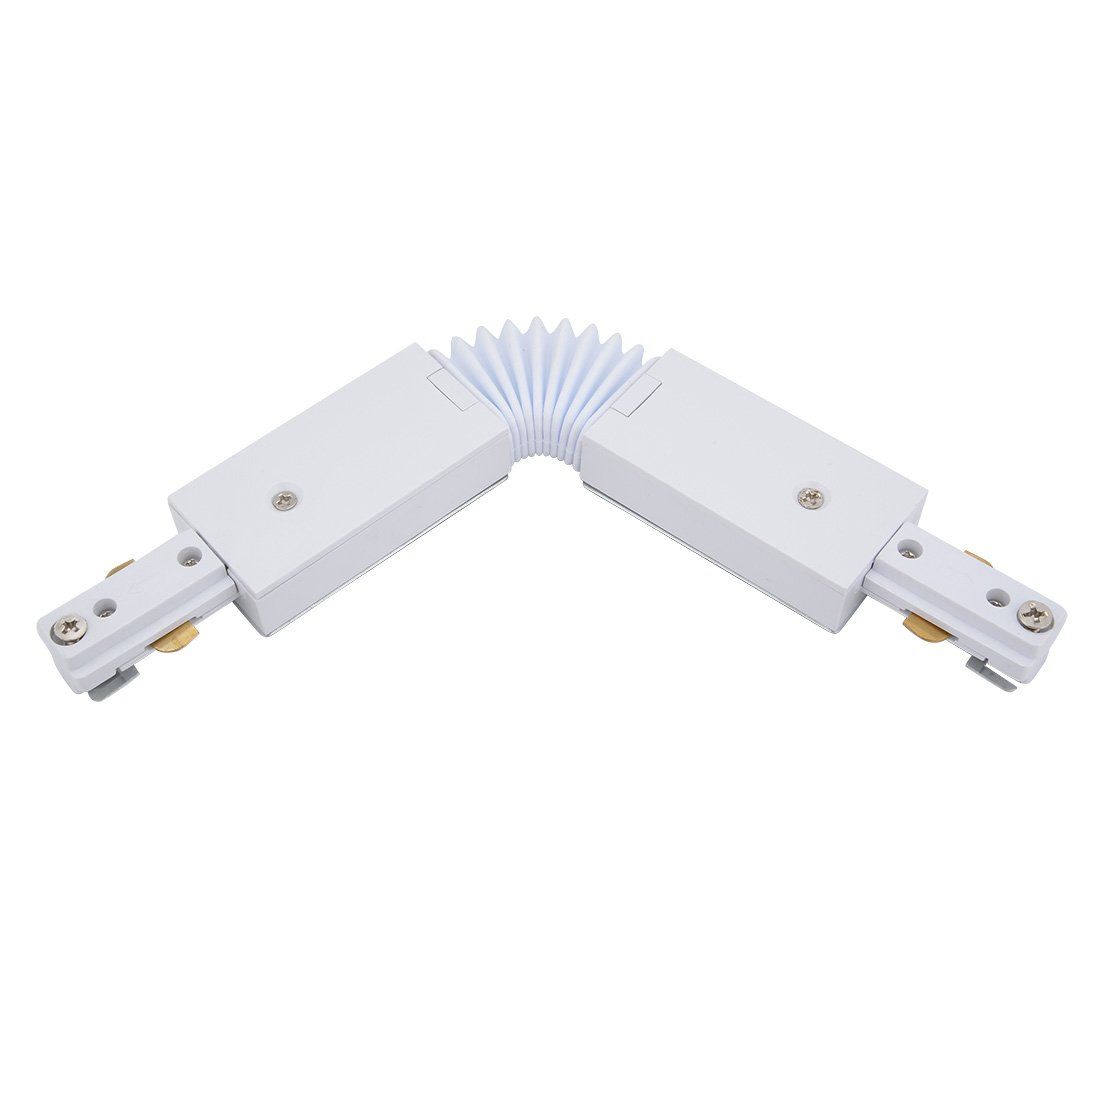 uxcell Track Connector 3-Wire Angle-free Flexible Rail Joiner Light Mounted Fitting